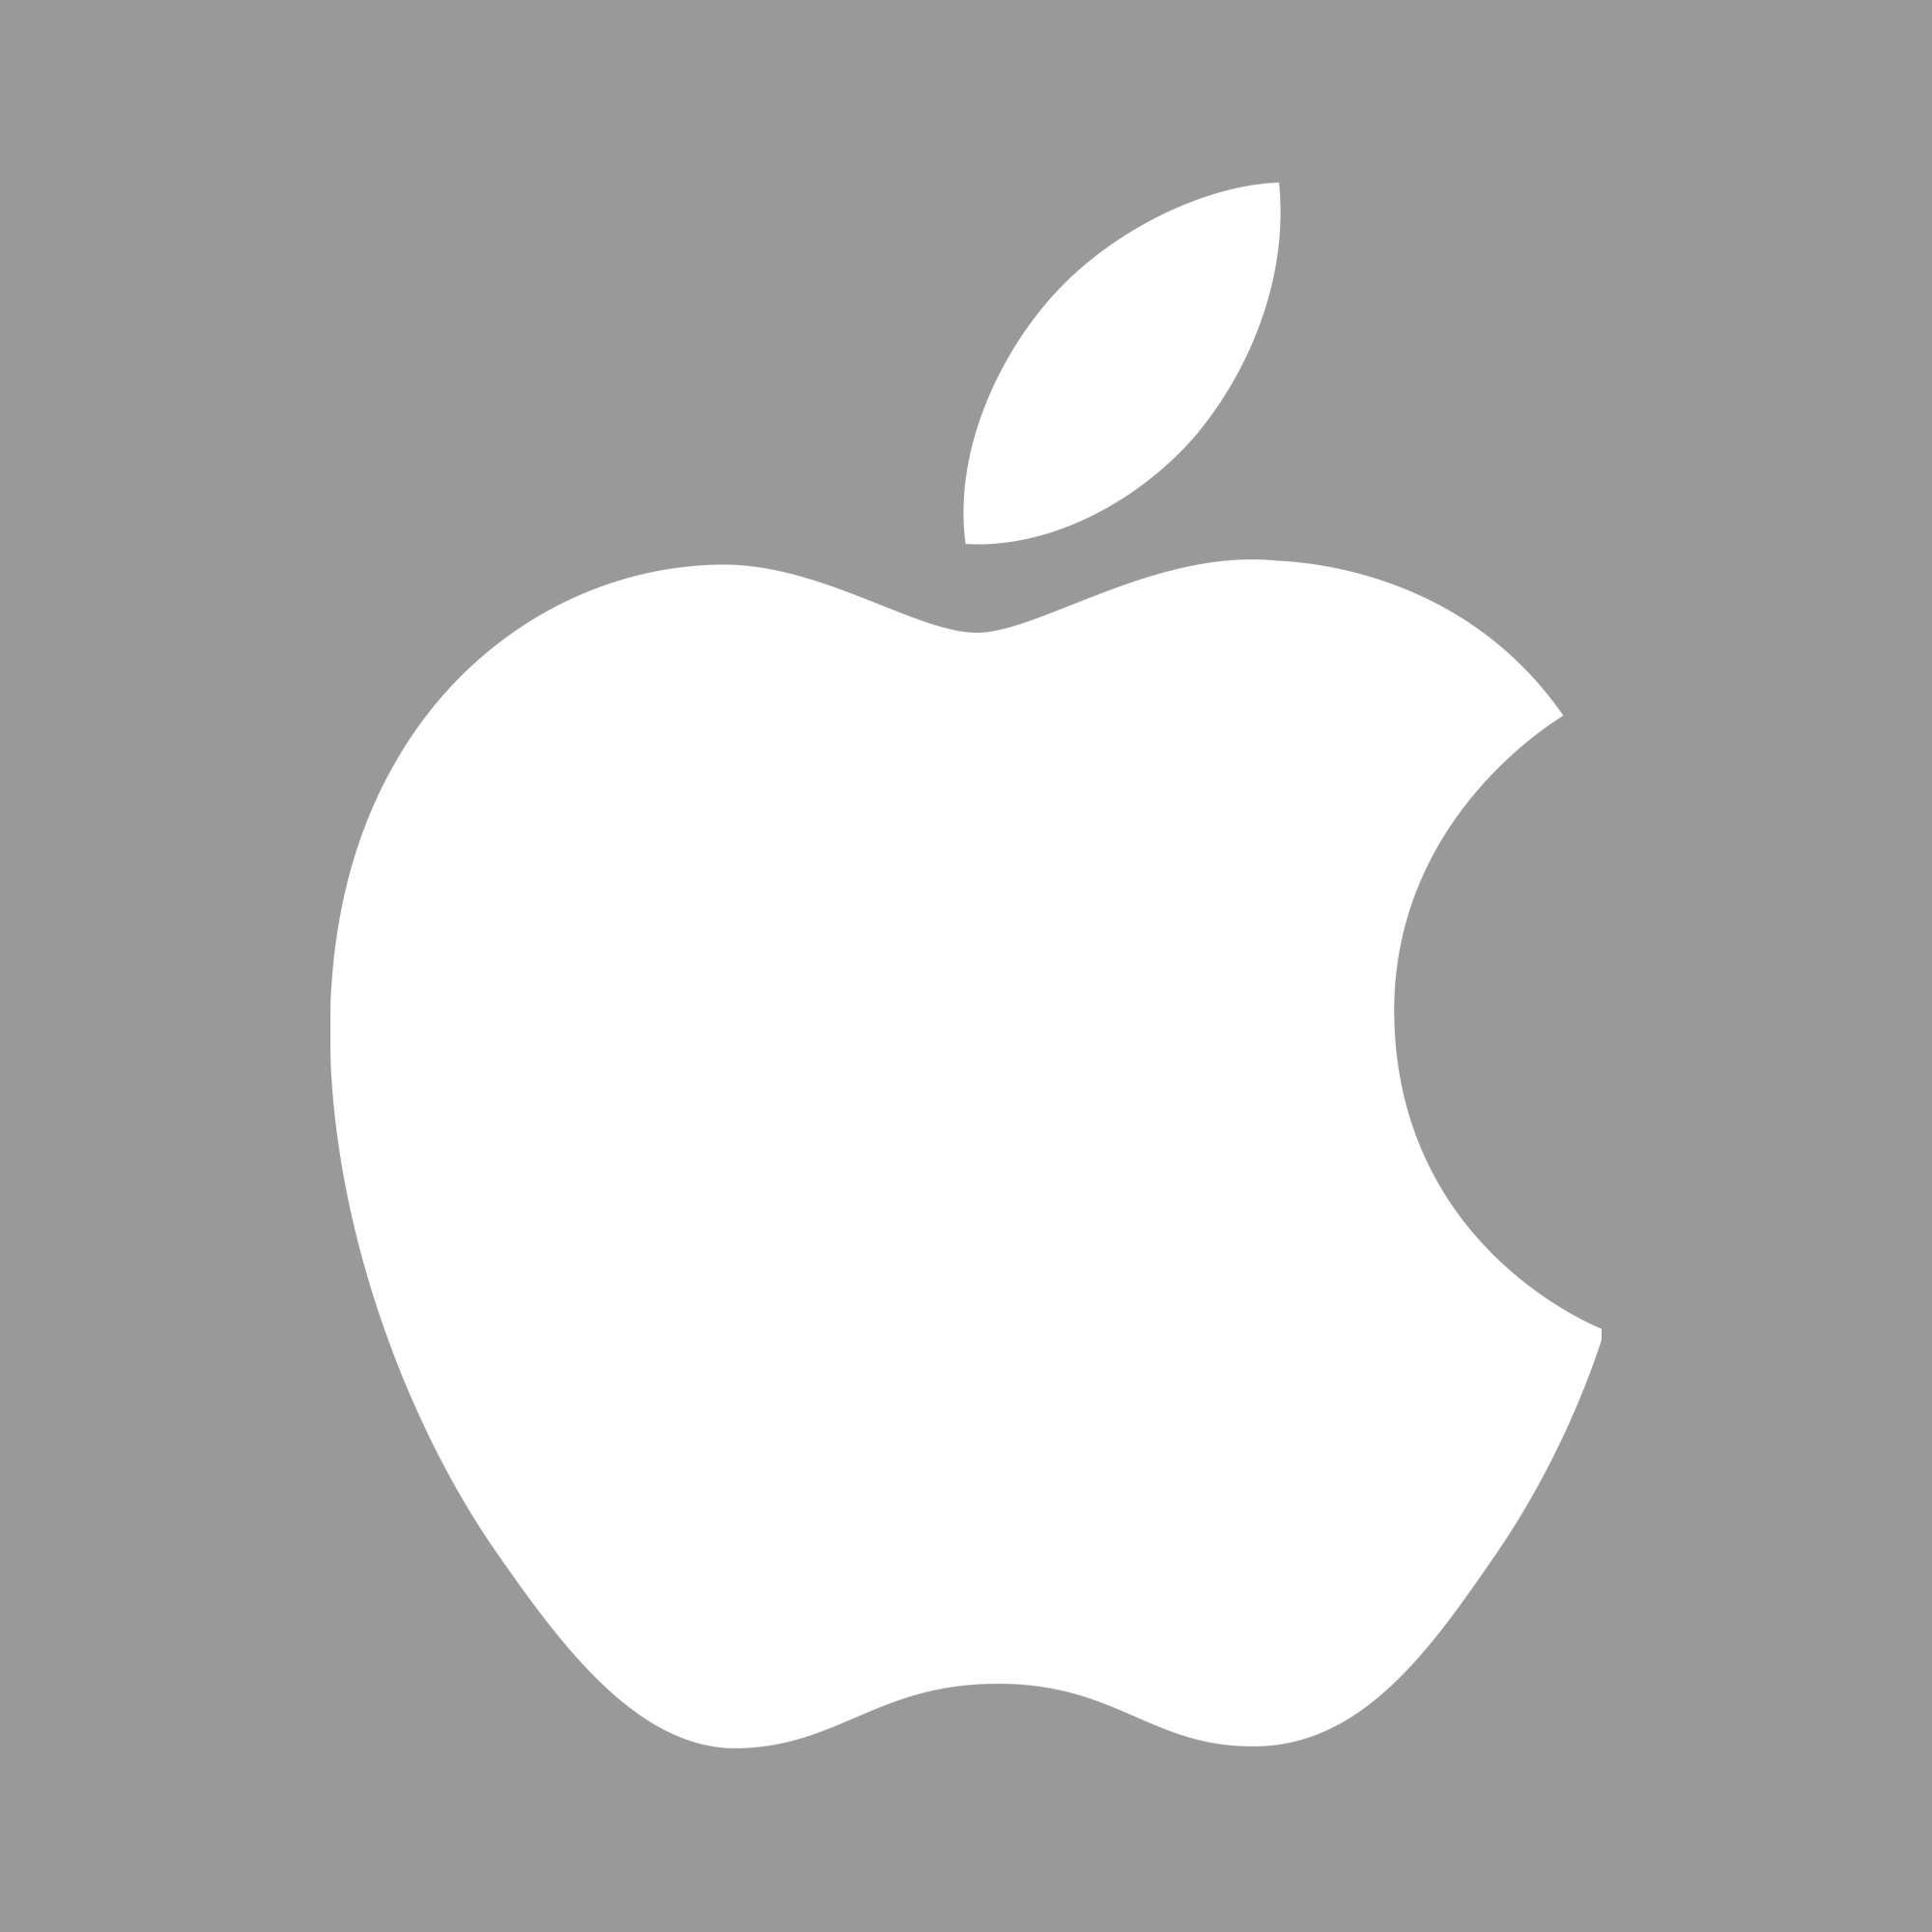 Get Apple Inc AAPLNASDAQ realtime stock quotes news and financial information from CNBC